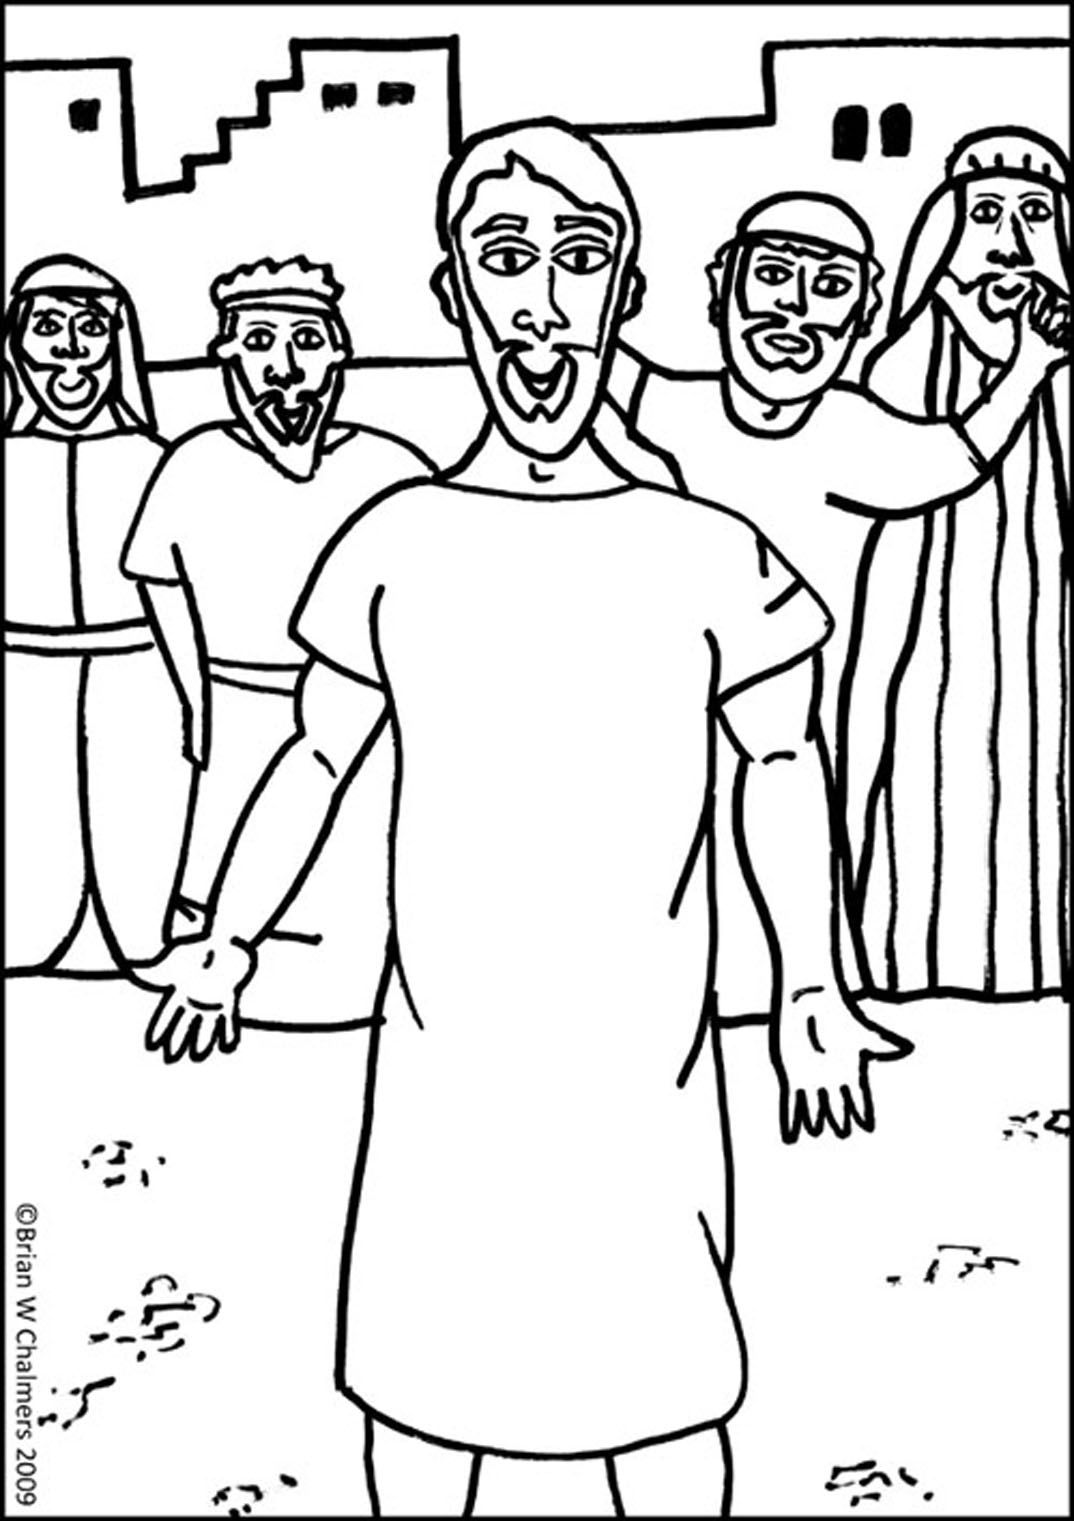 jesus heals paralyzed man coloring page preschool bible coloring pages jesus heals a paralyzed man paralyzed page coloring man heals jesus